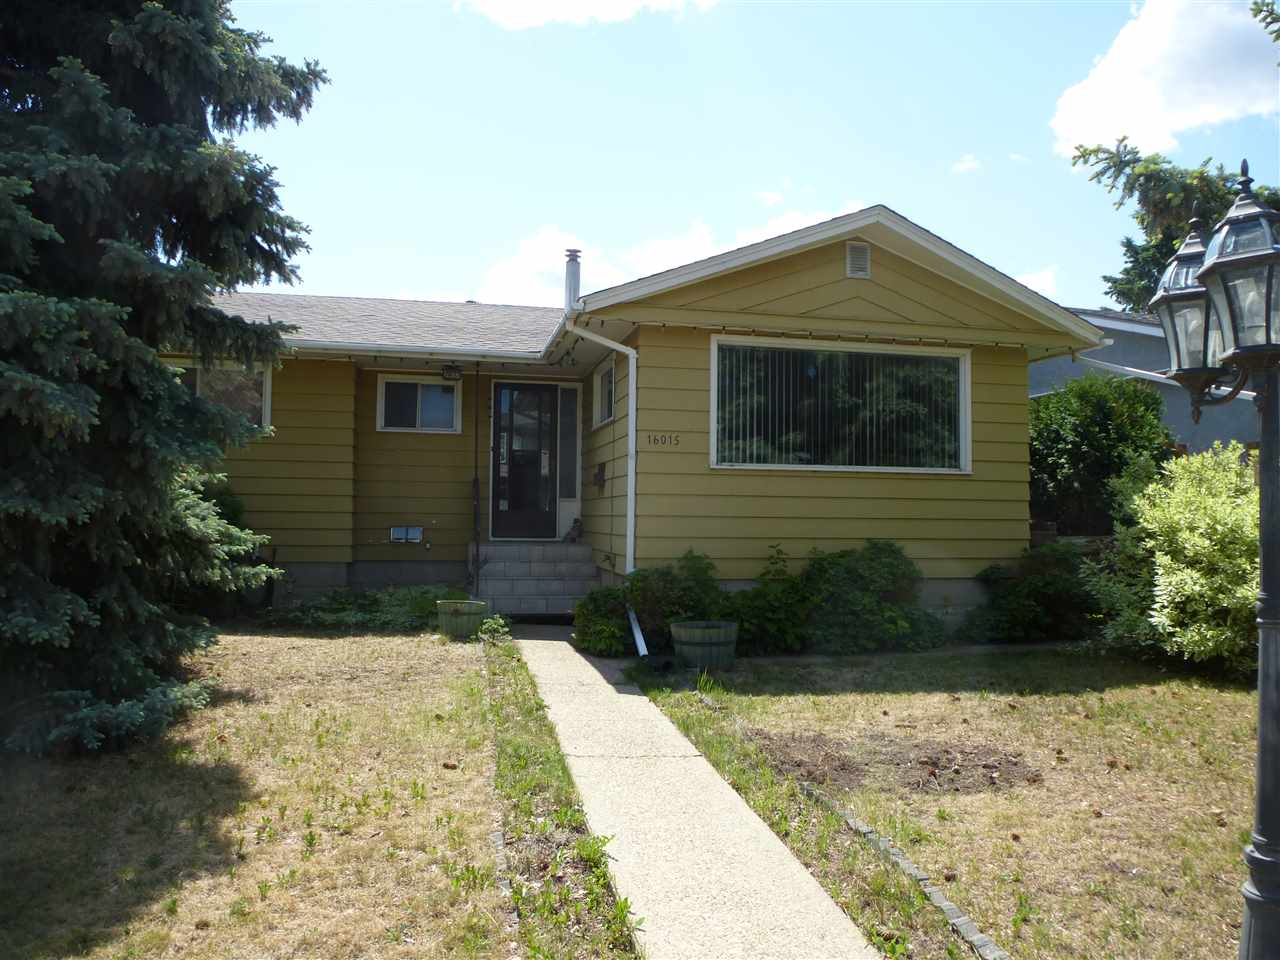 MLS® listing #E4164883 for sale located at 16015 103 Avenue